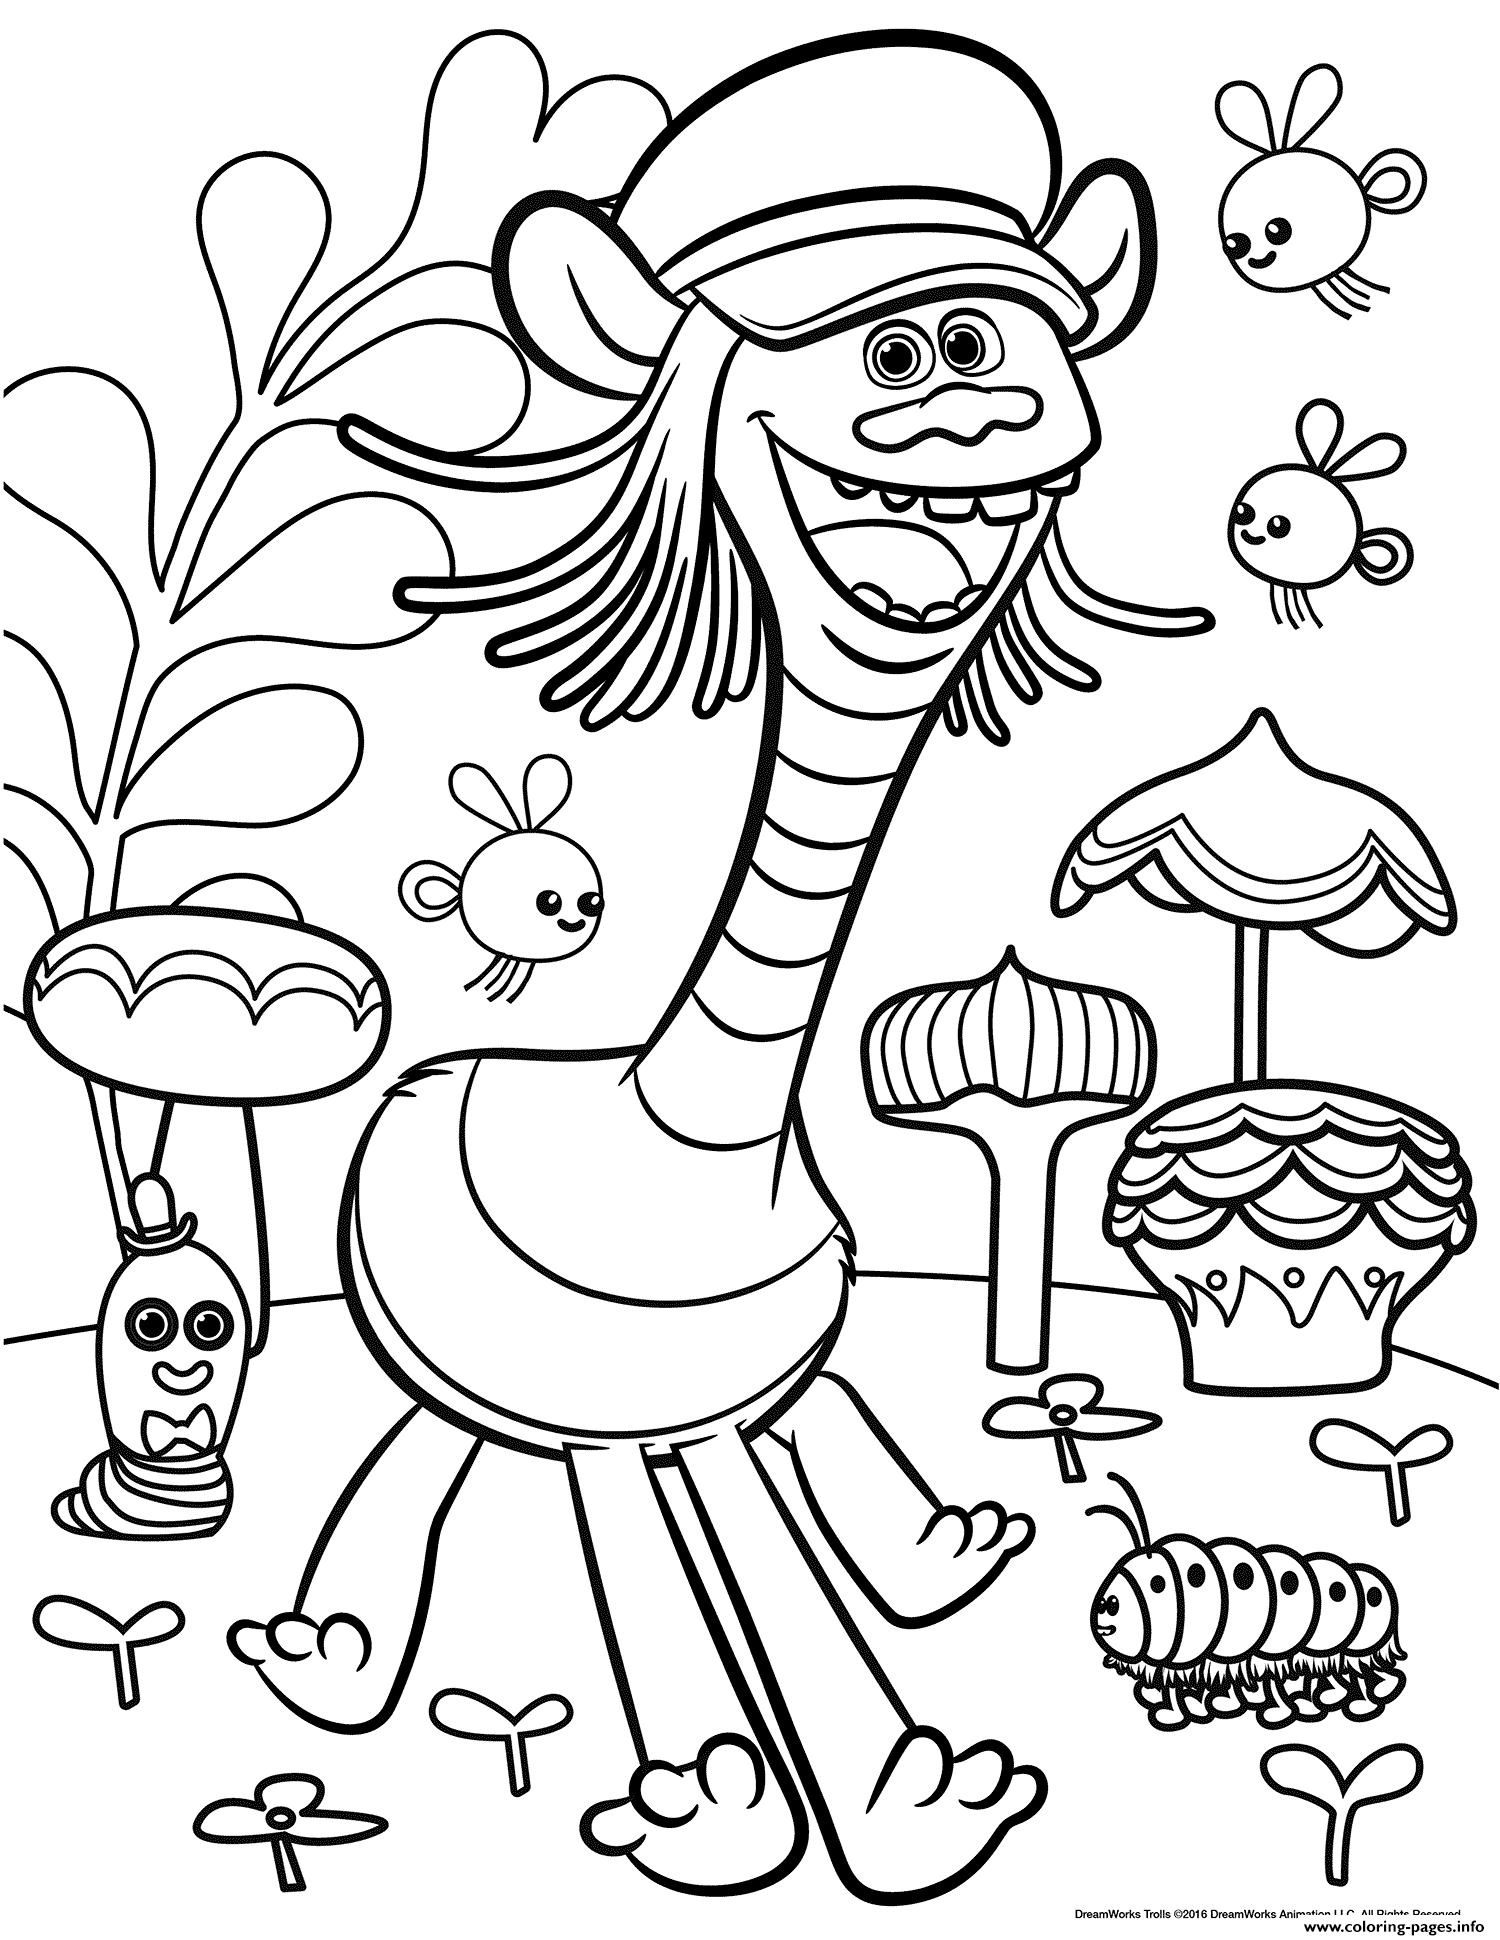 Print Trolls Movie Color Troll Coloring Pages Kiddos Coloring